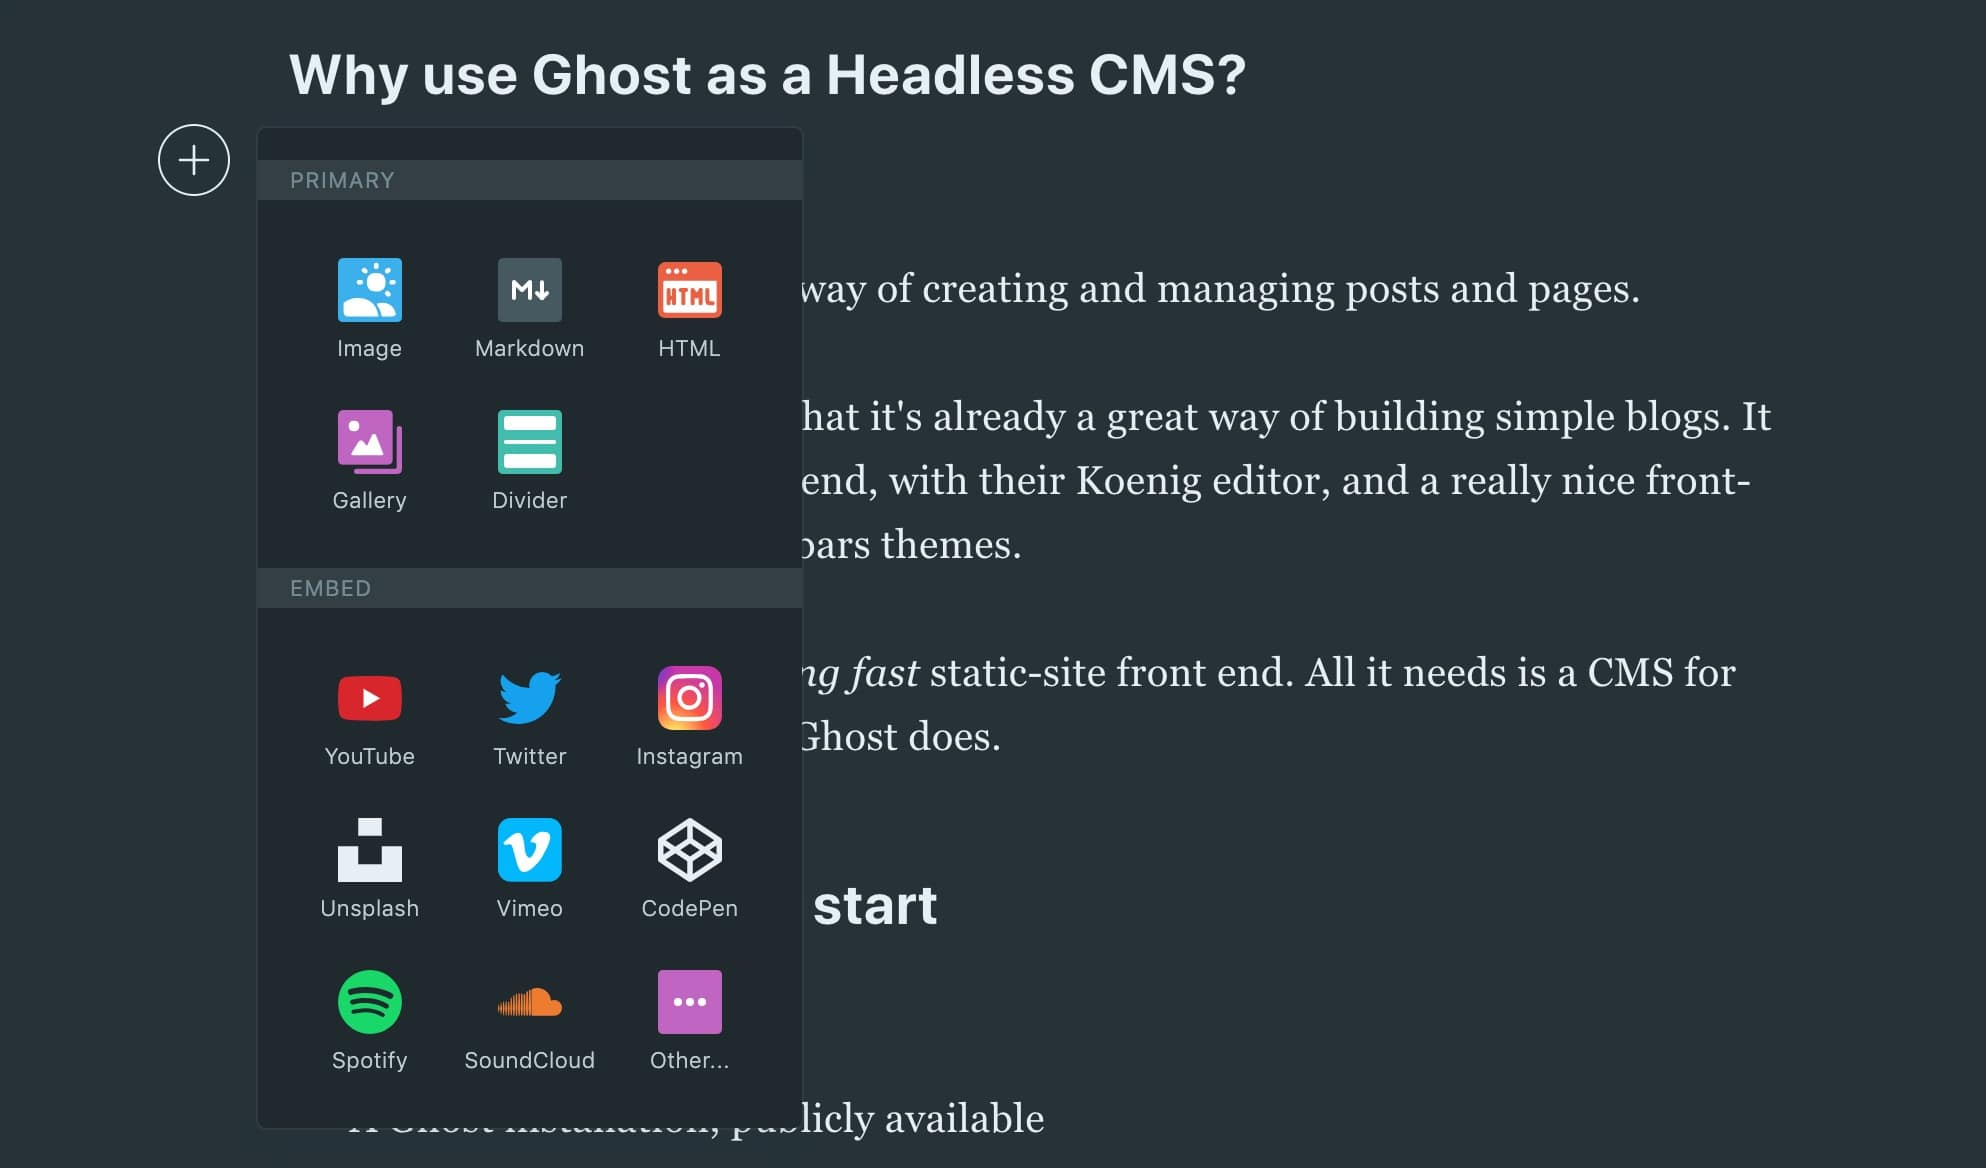 The Ghost Koenig editor is one of the best, and it's a headless CMS platform